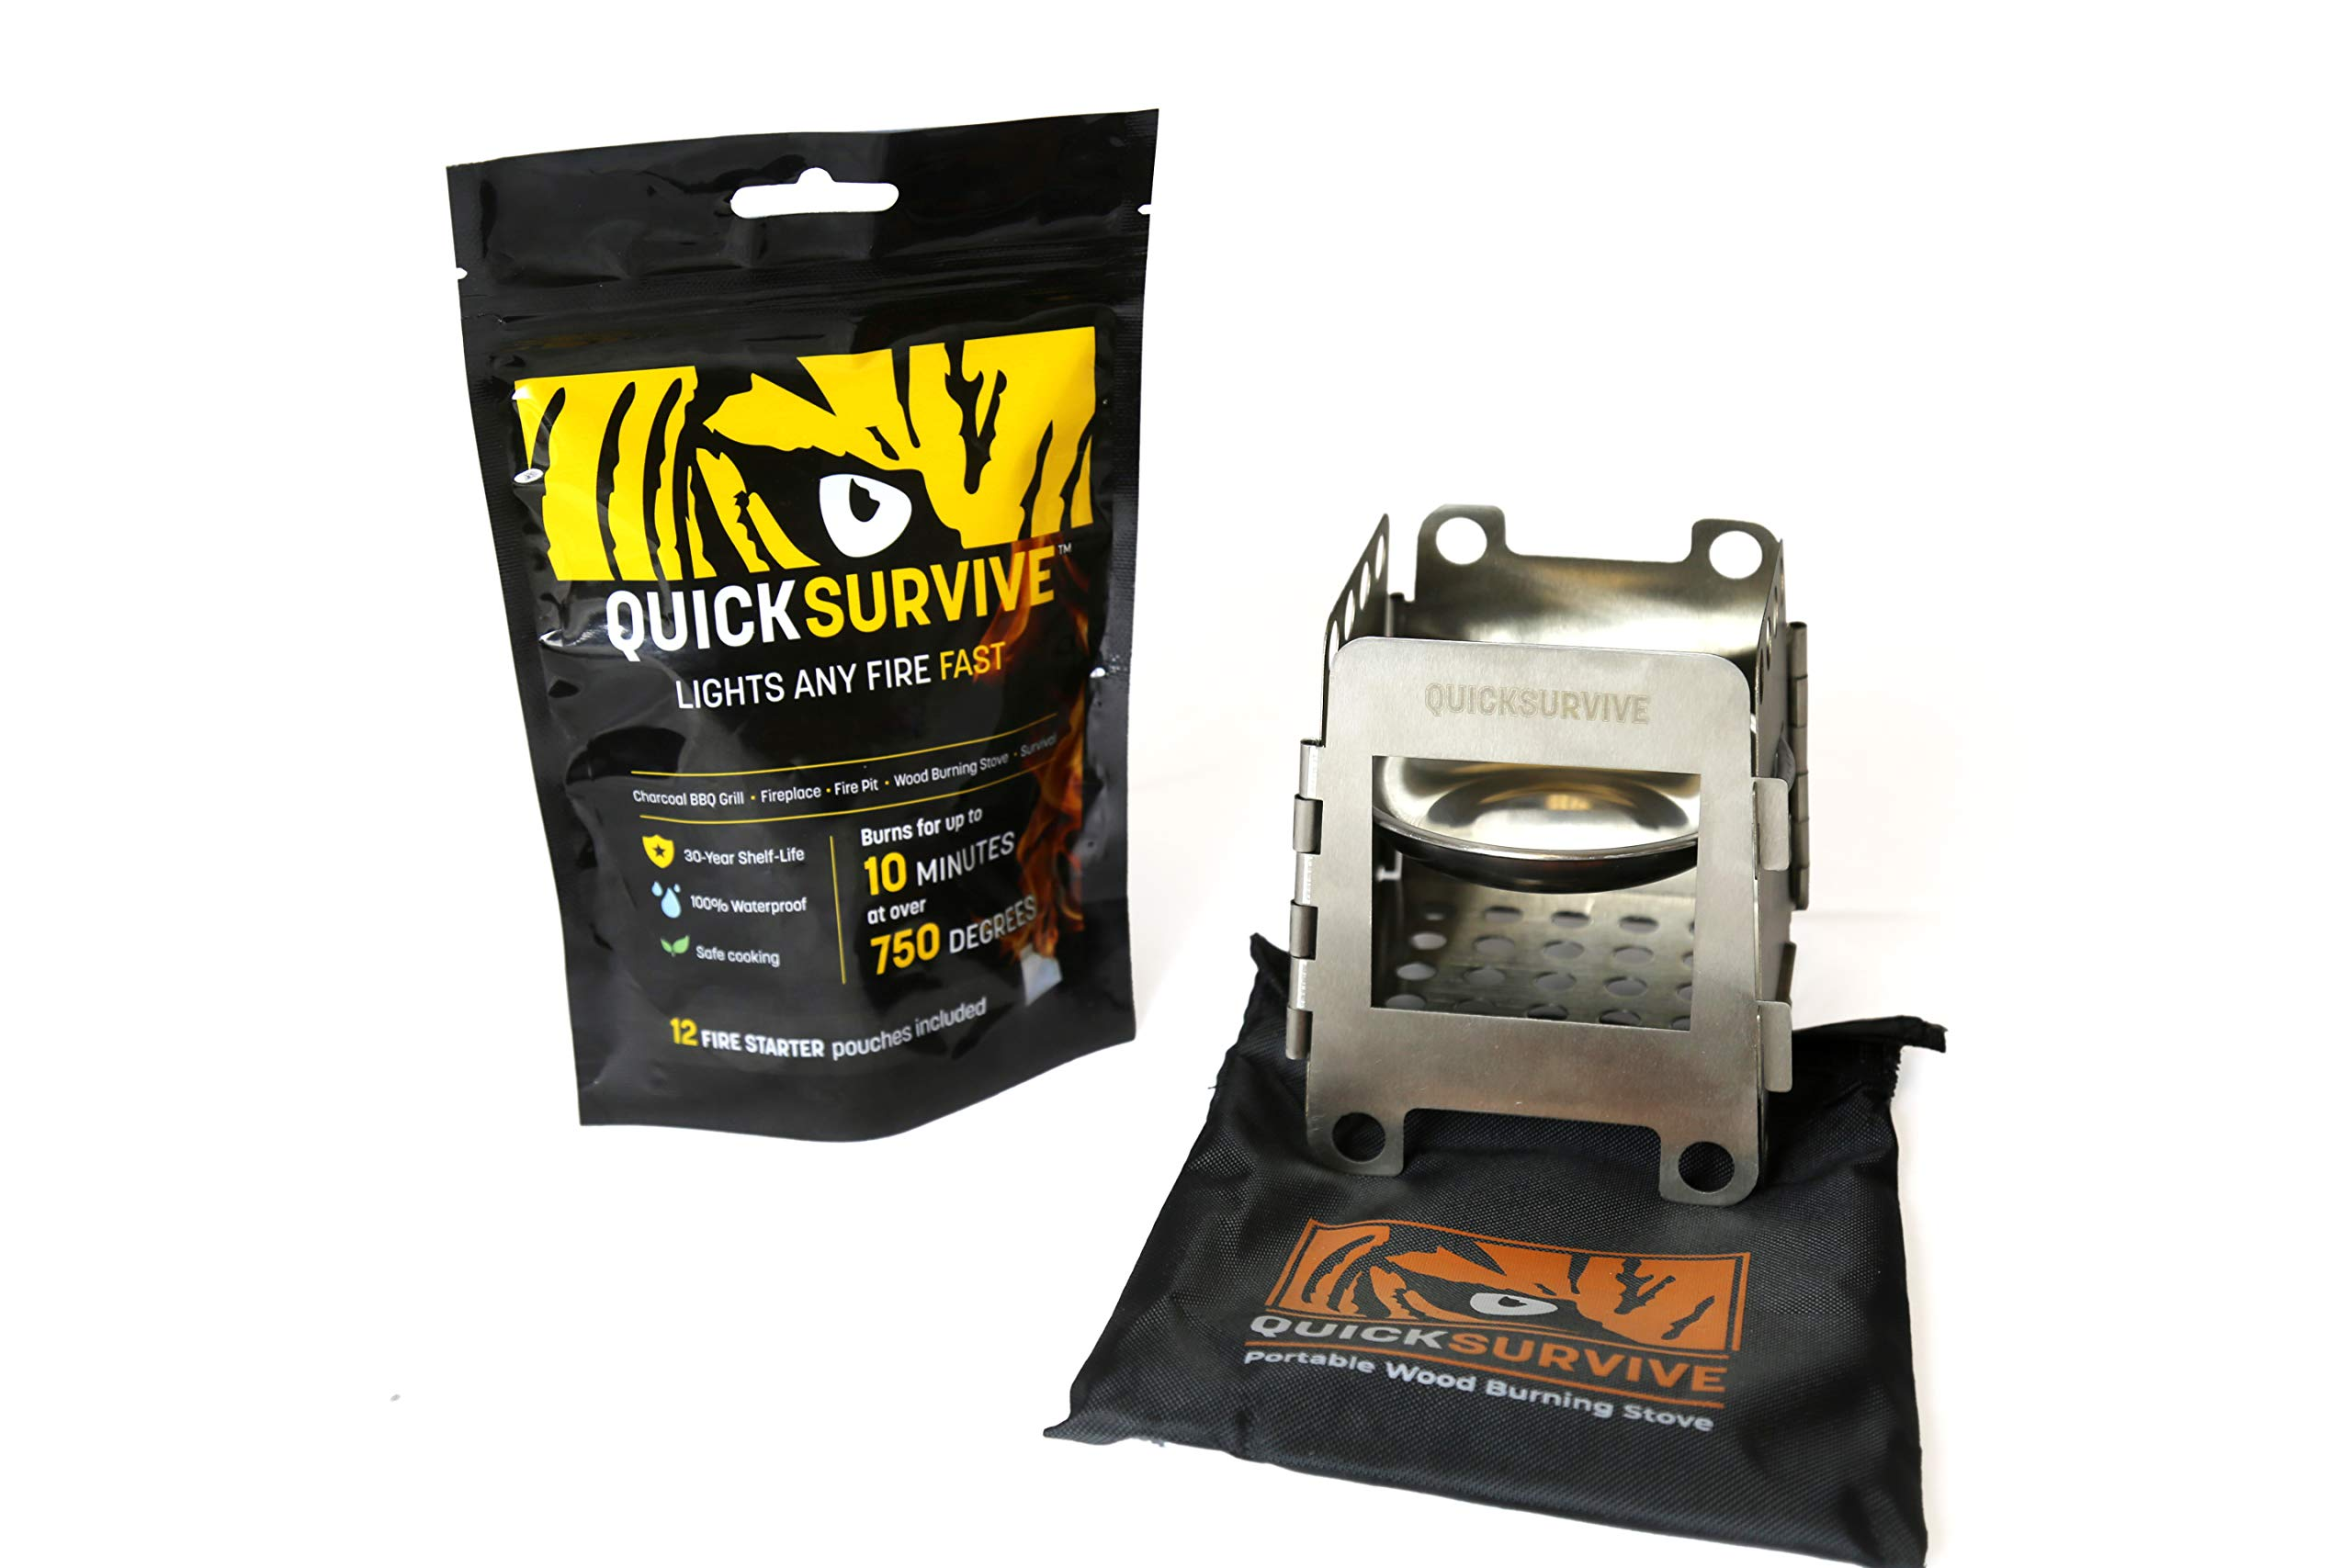 QUICKSURVIVE Mini Survival Wood Burning Stove and All-Purpose Fire Starters (Stove + 12 Fire Starters) by QUICKSURVIVE